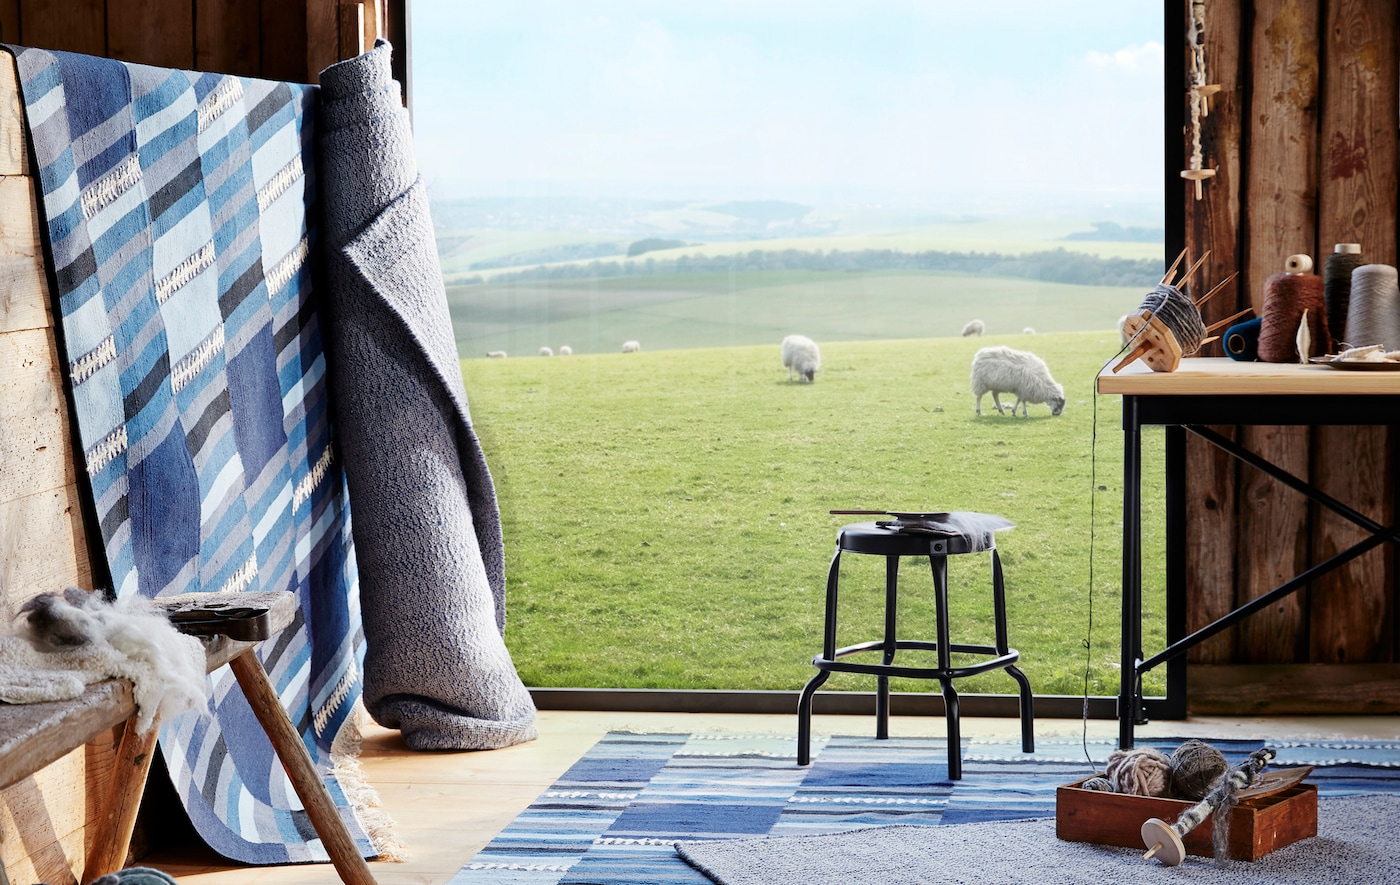 Blue and grey rugs laid out and rolled up in a wooden room, looking out onto a field of sheep.